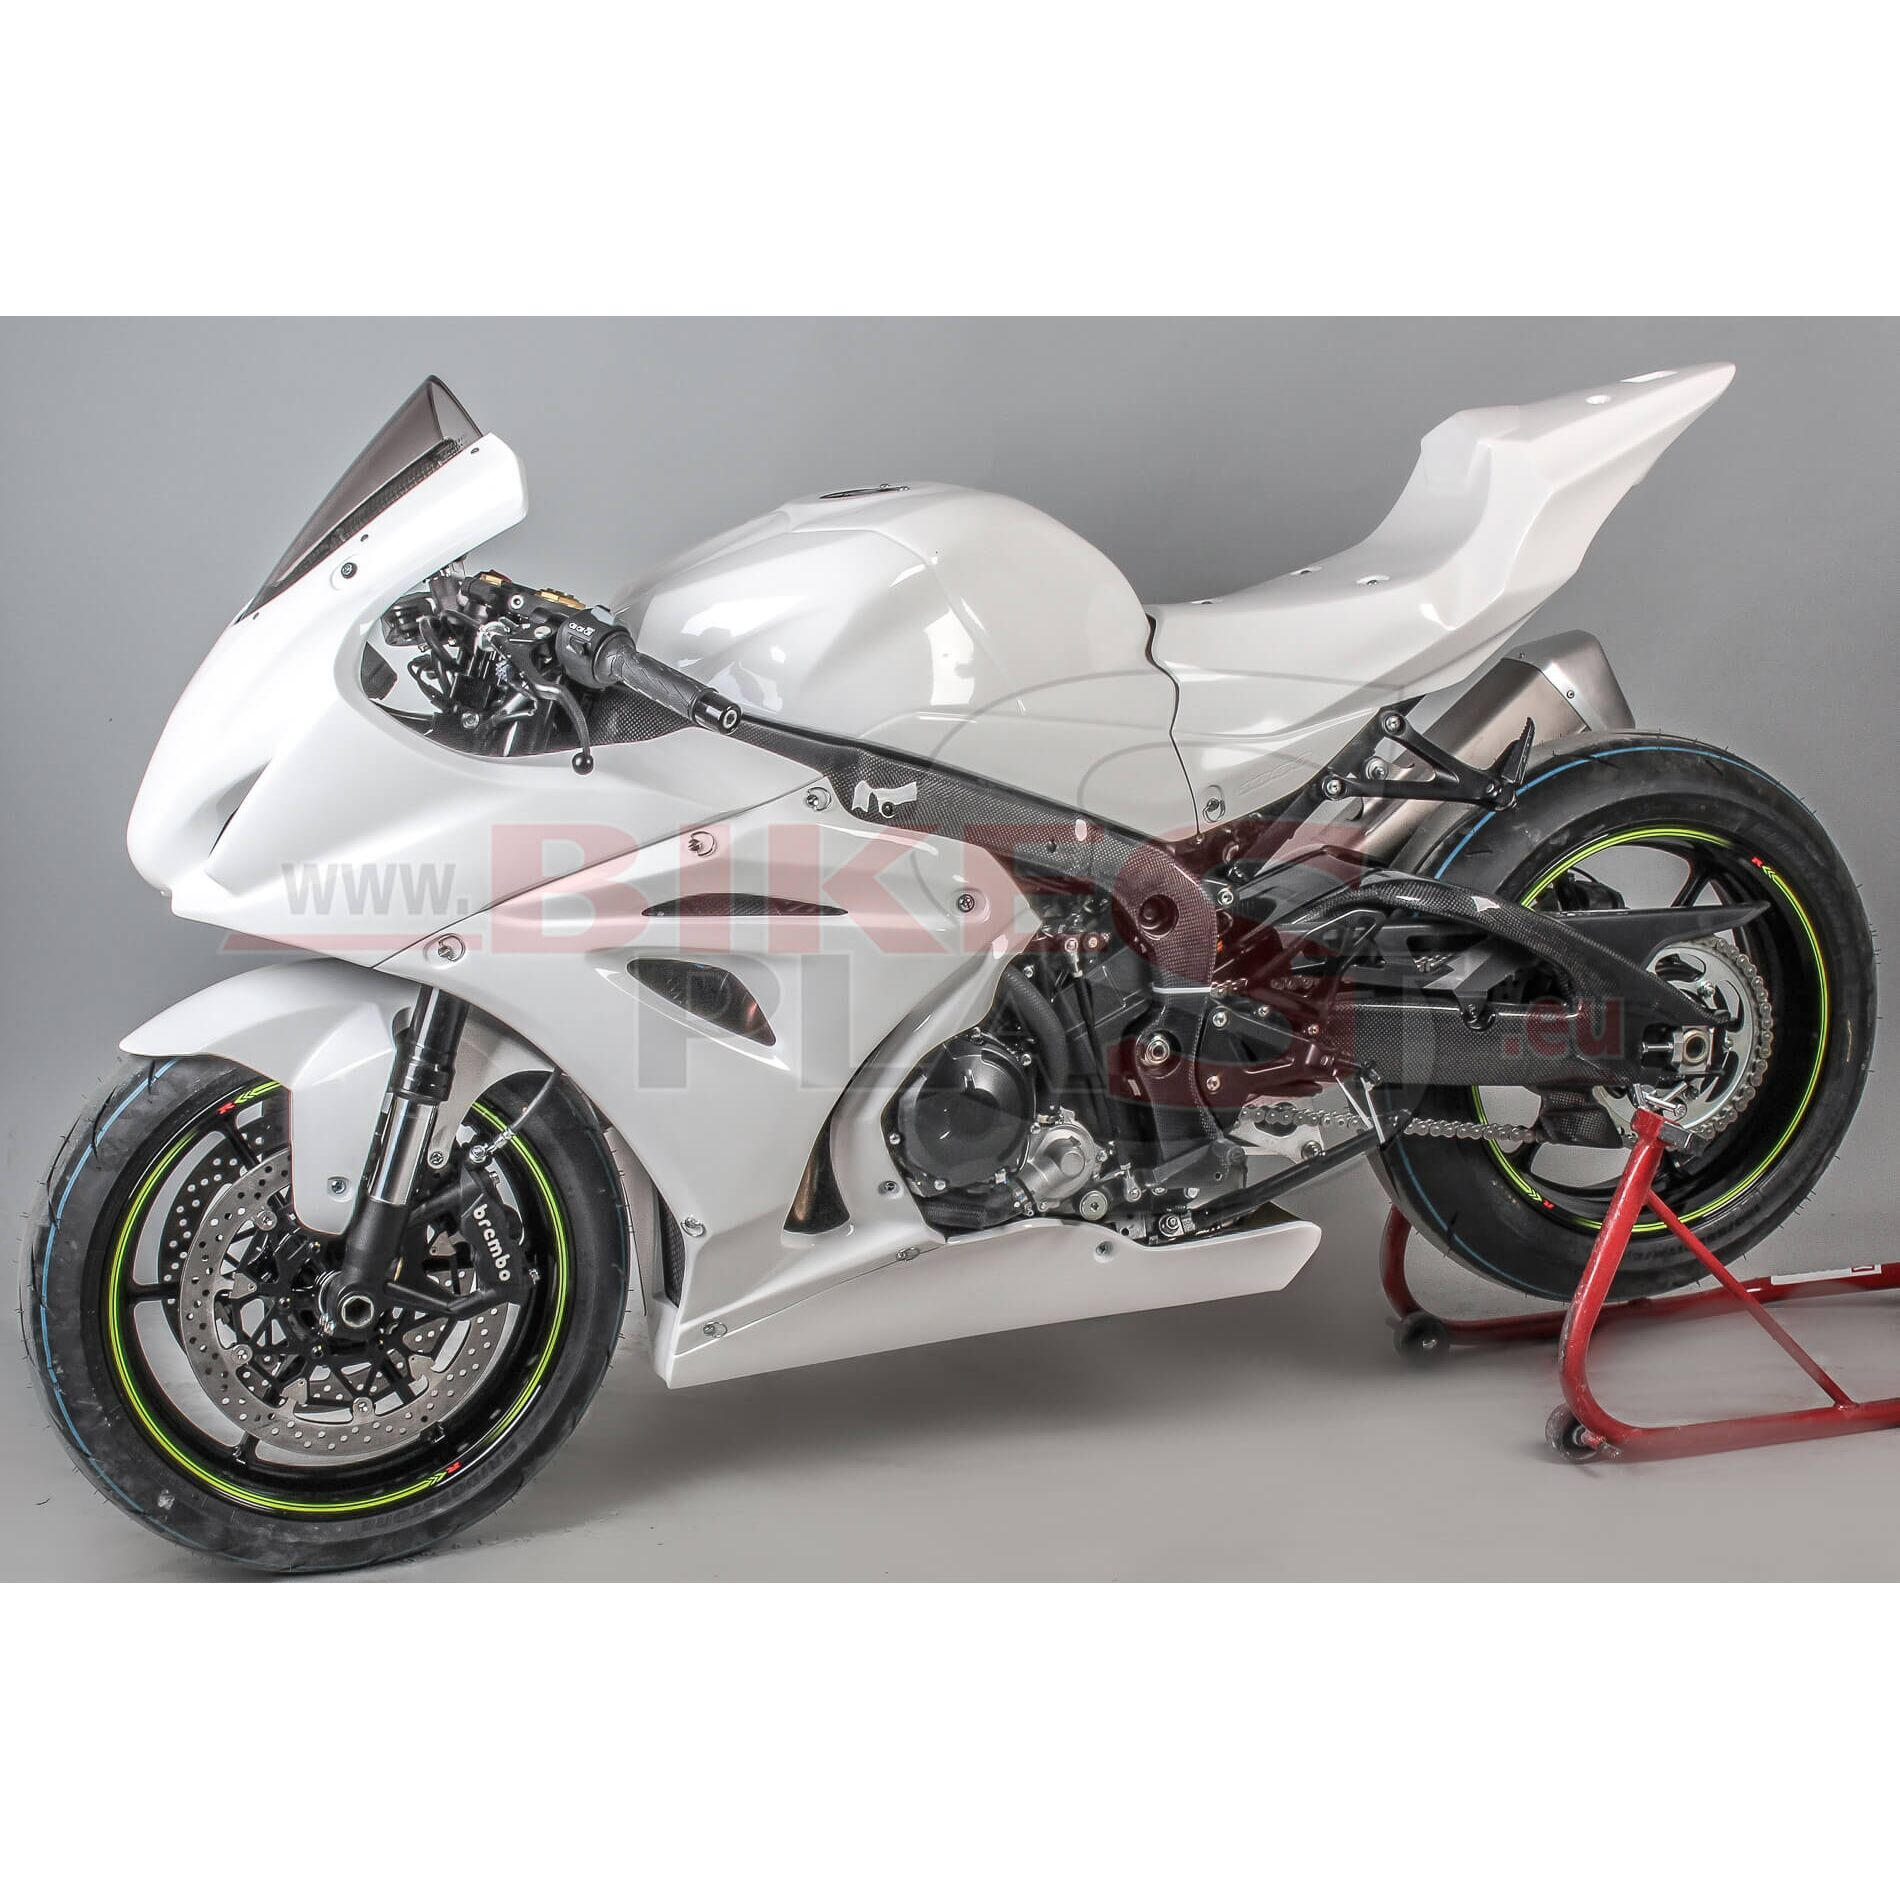 2000 Suzuki Gsxr 600 Wiring Diagram On Suzuki Gsx R 600 Wiring Diagram